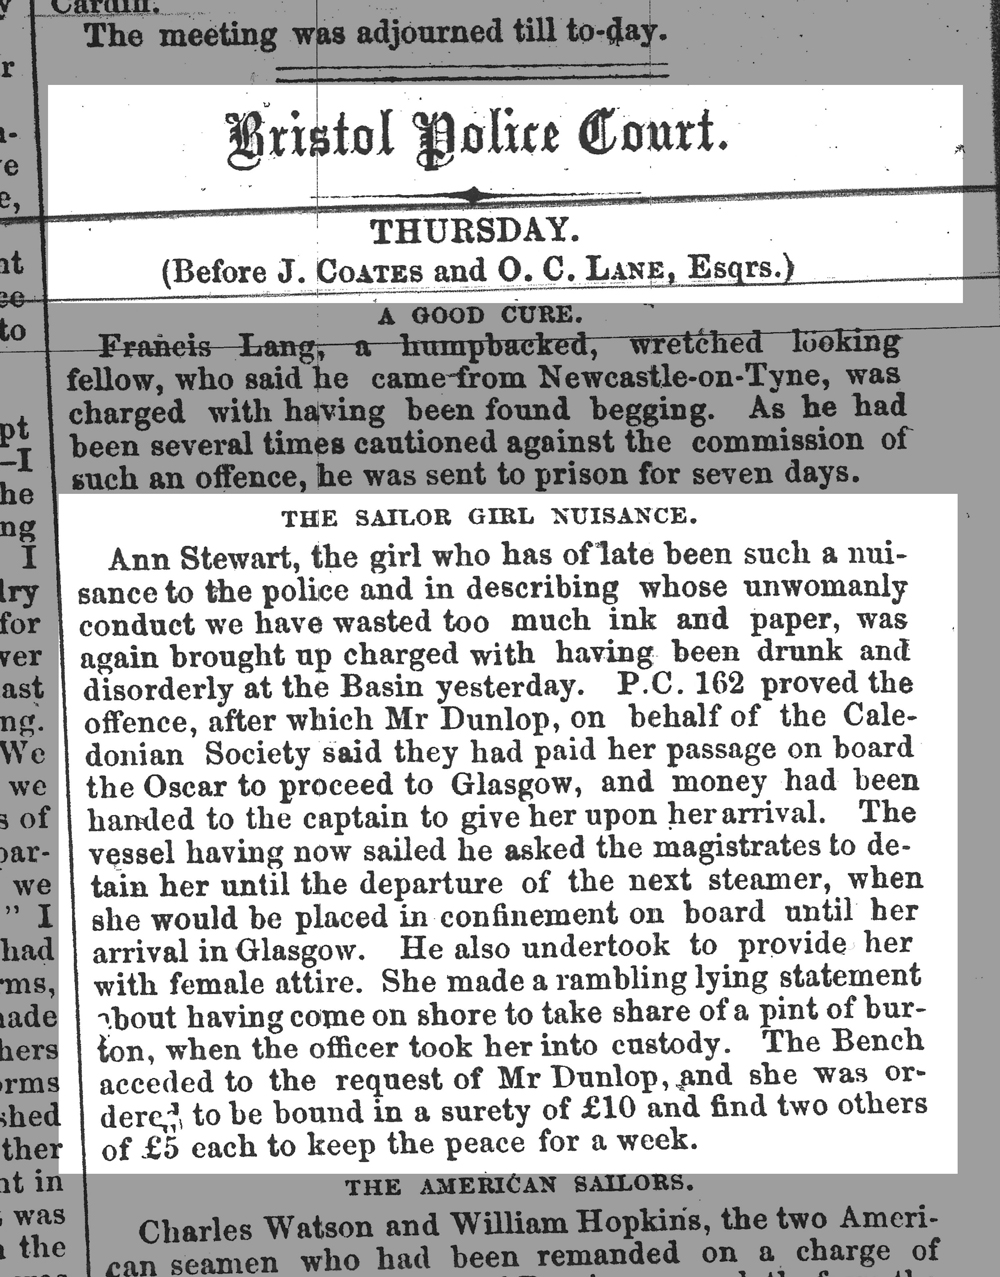 Scanned copy of the original newspaper article - black and white slightly eroded serif-font typewriter style text, no pictures.